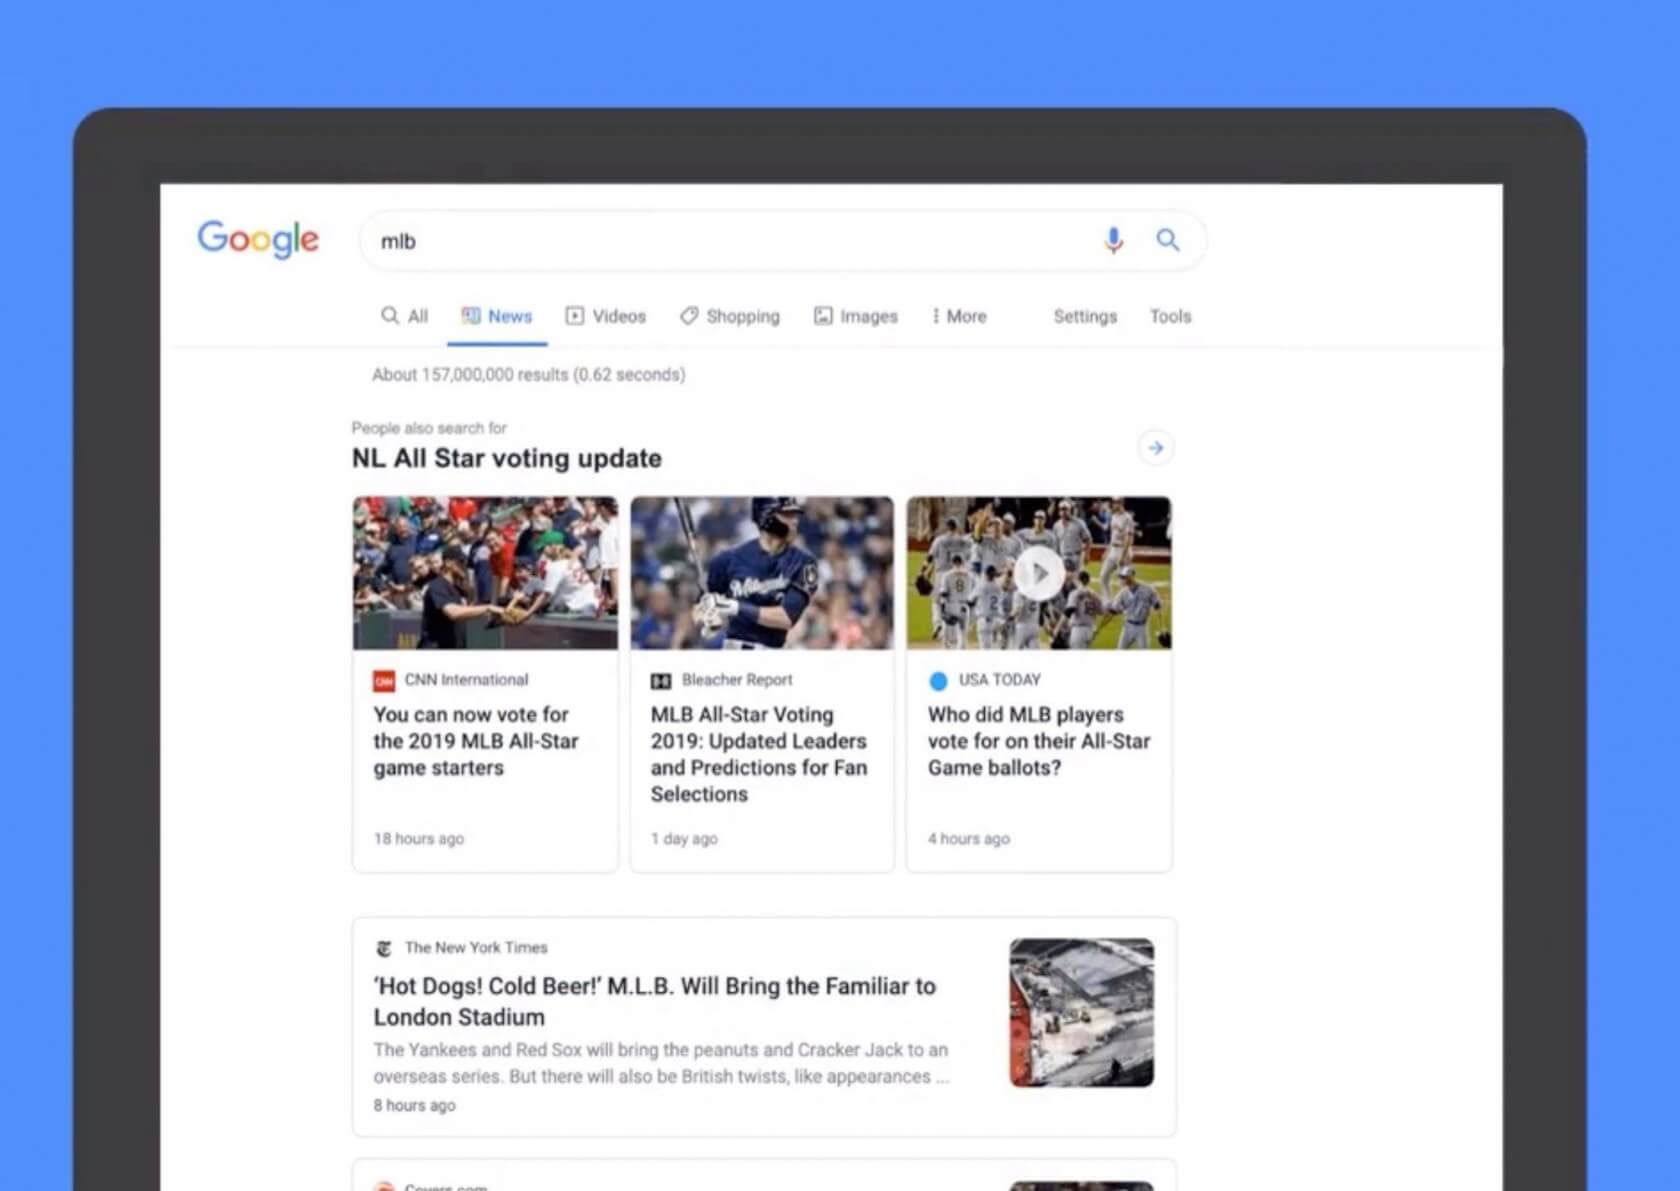 Google is redesigning its News tab in Search to be more readable